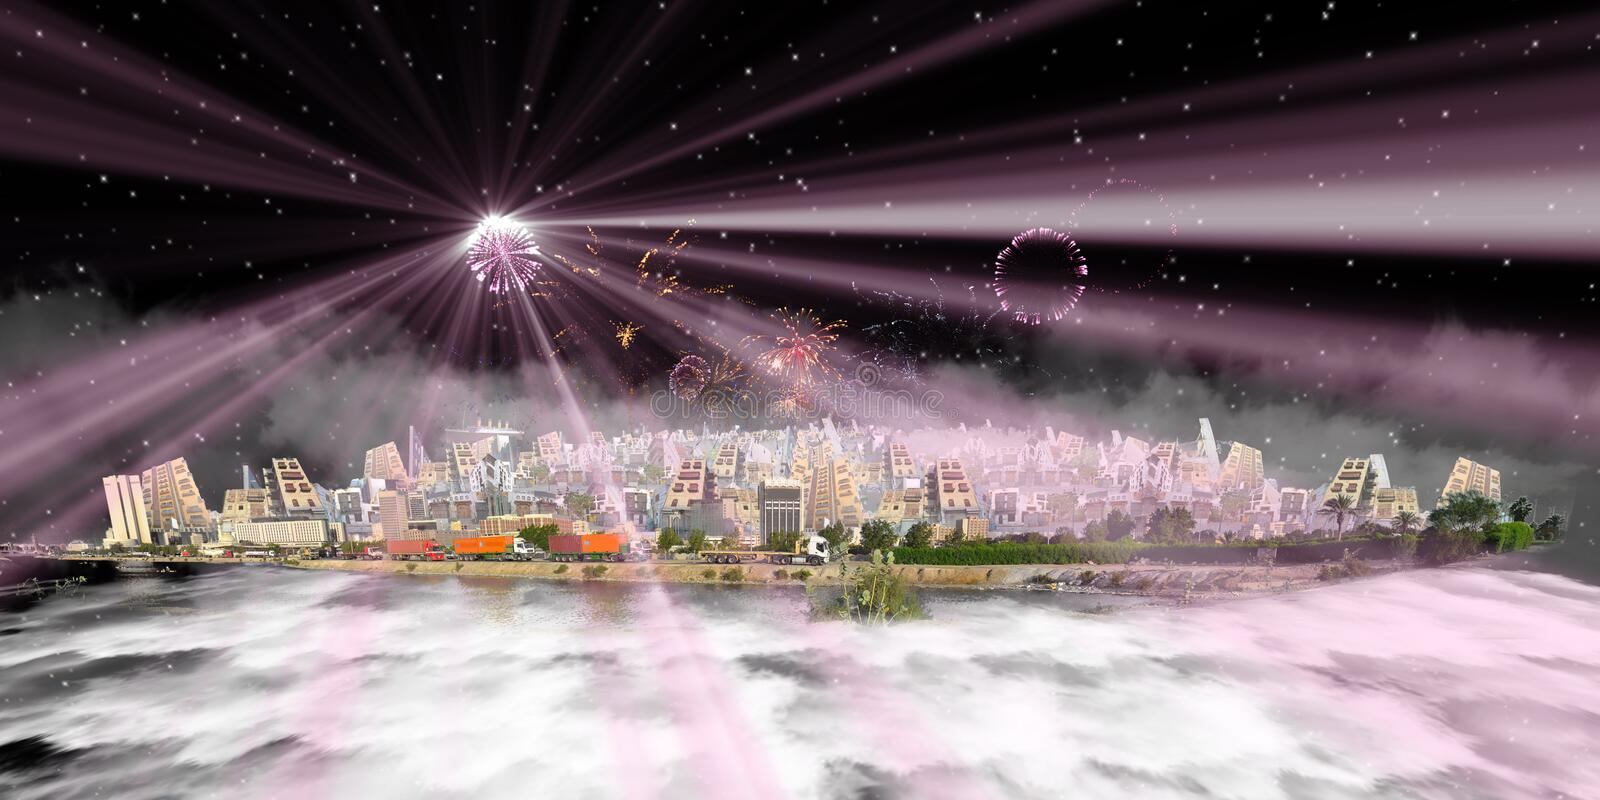 Imagination jeddah over clouds at night with fireworks royalty free illustration